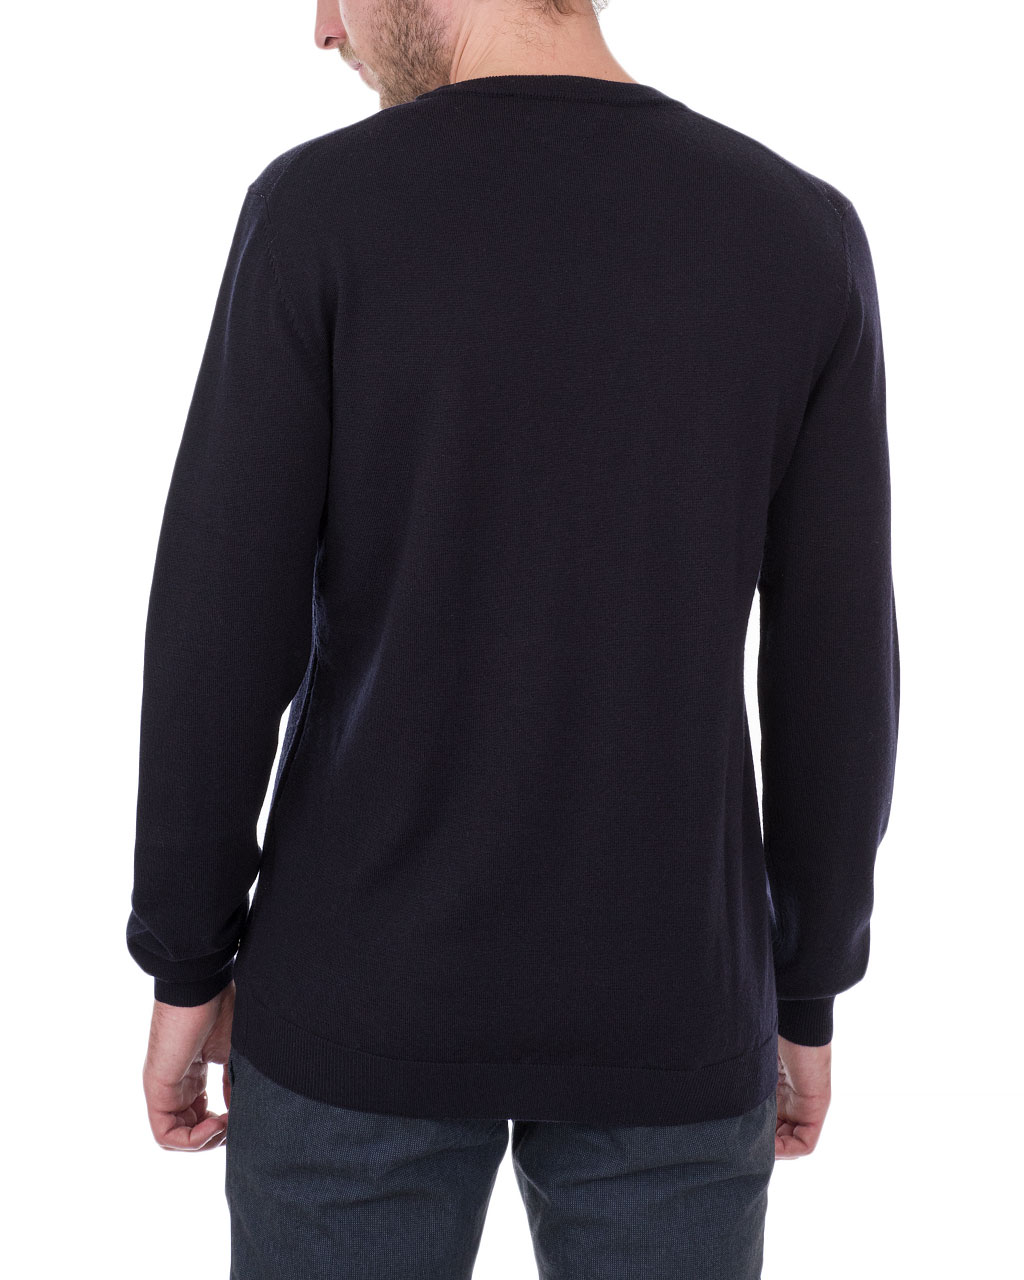 Men's jumper 1855-319/19-20 (6)